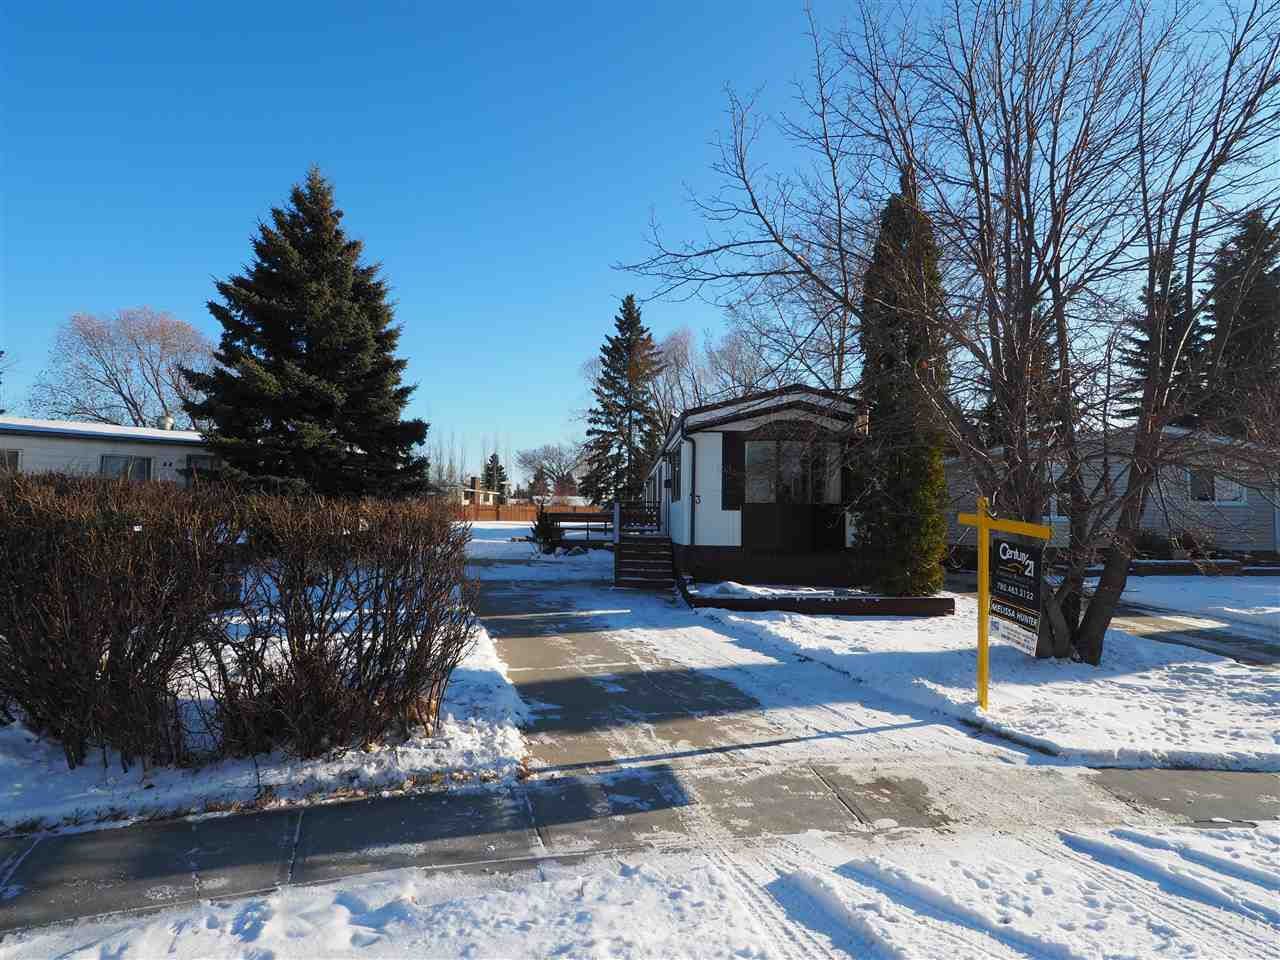 Located in the beautifully kept mobile home park of Castleview Village. This quiet cul de sac single wide mobile backs on to a beautiful green space that leads you right into the Orval Allen Park. The lot features a huge deck, firepit, 4 car parking pad & a HUGE workshop/shed. Inside the home you will be welcomed with a bright open concept. This once three bedroom home has been converted into a one bedroom + flex space. The two small bedrooms have been opened up to allow a bright large space that could be used as an office, TV room or could also be easily converted back into a two or three bedroom home. This home shows pride of ownership around every corner!